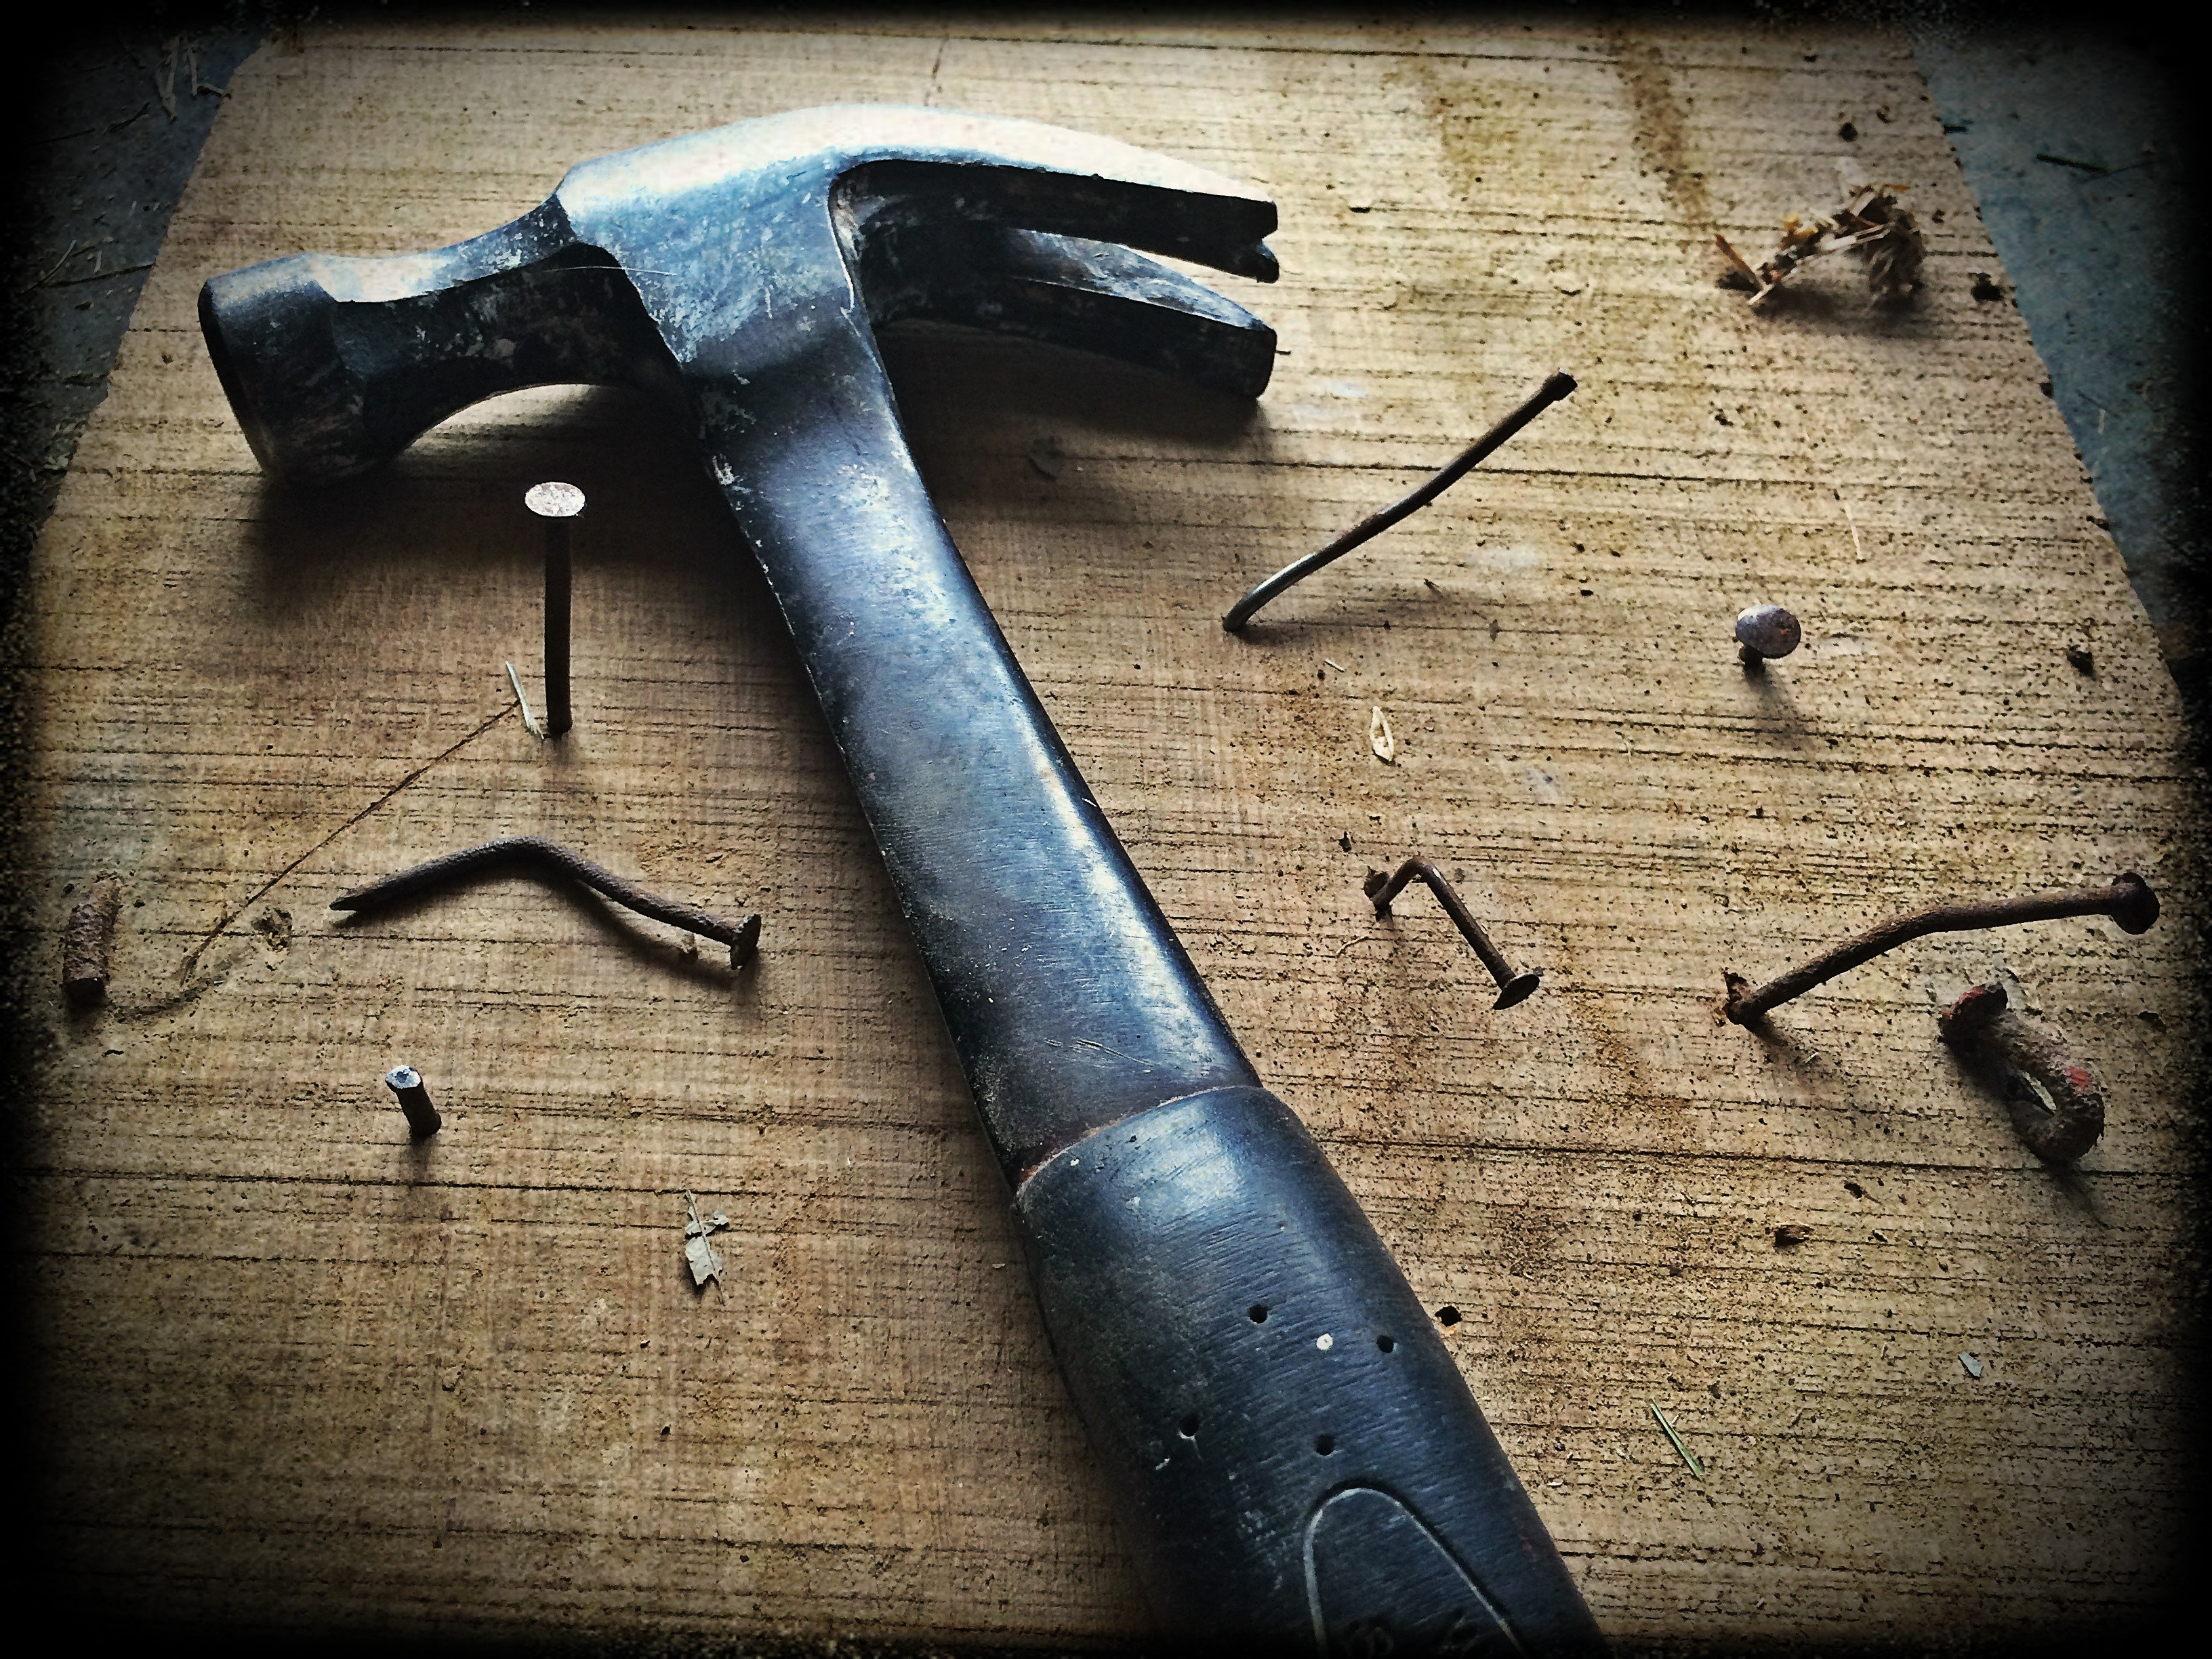 Black claw hammer on brown wooden plank photo